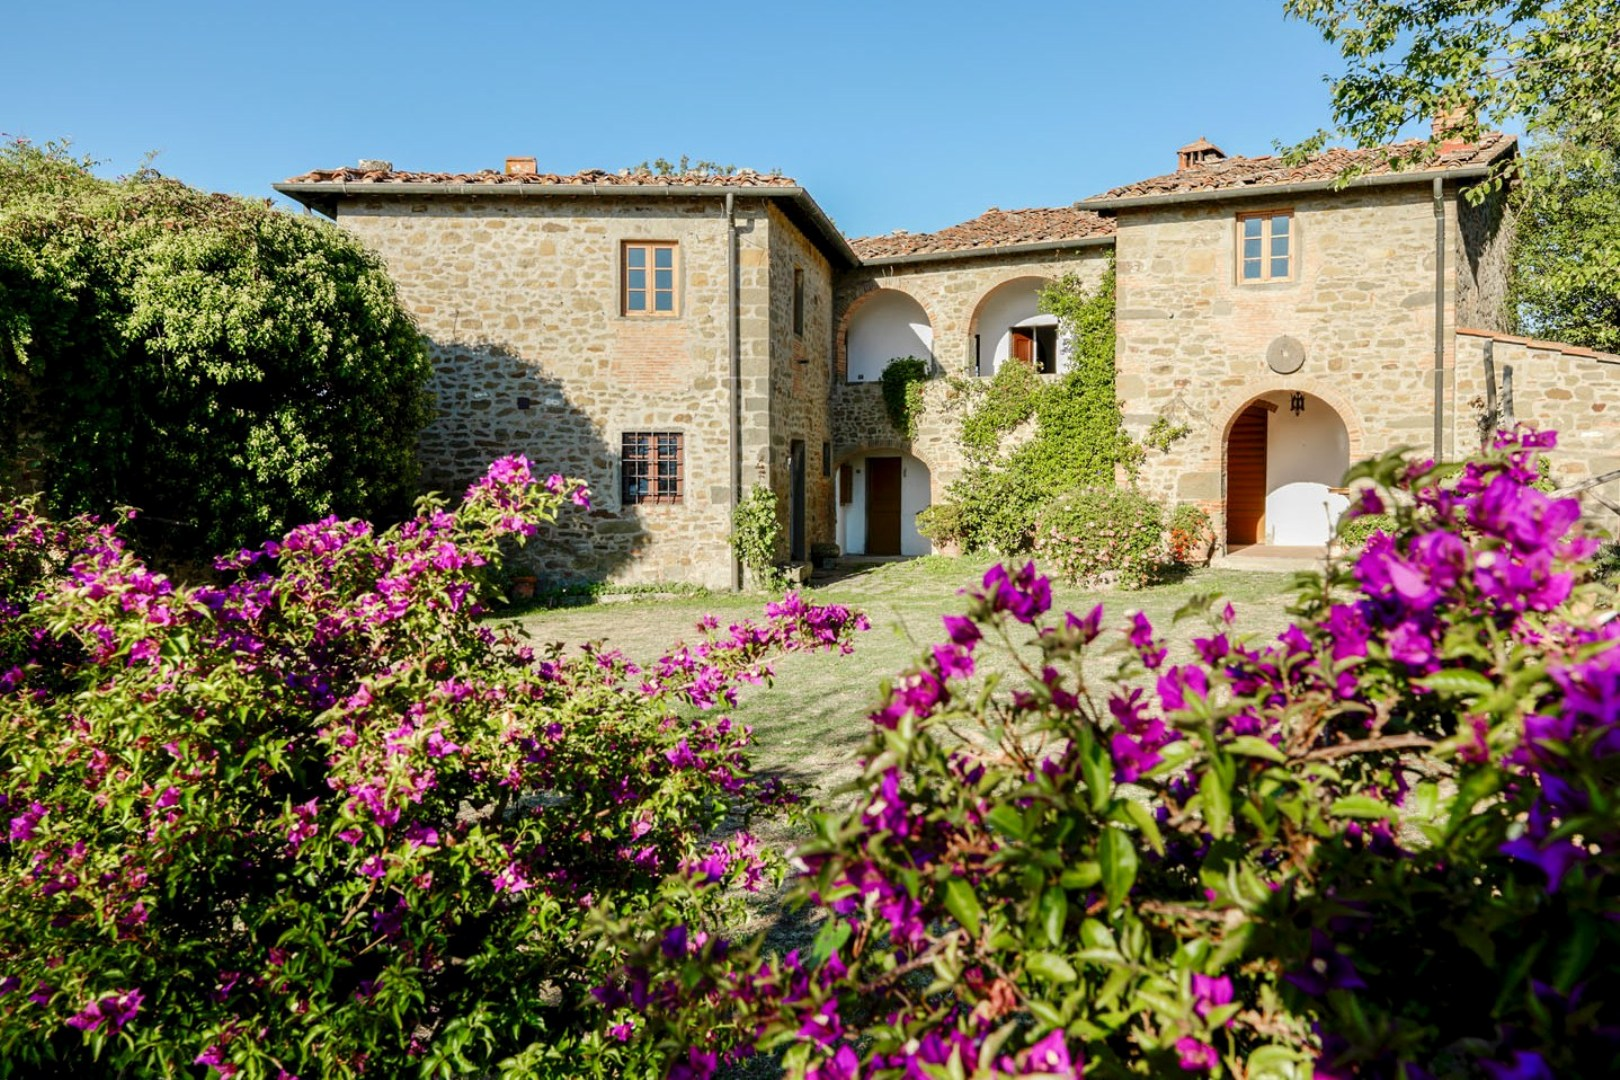 Farmhouse in Tuscany